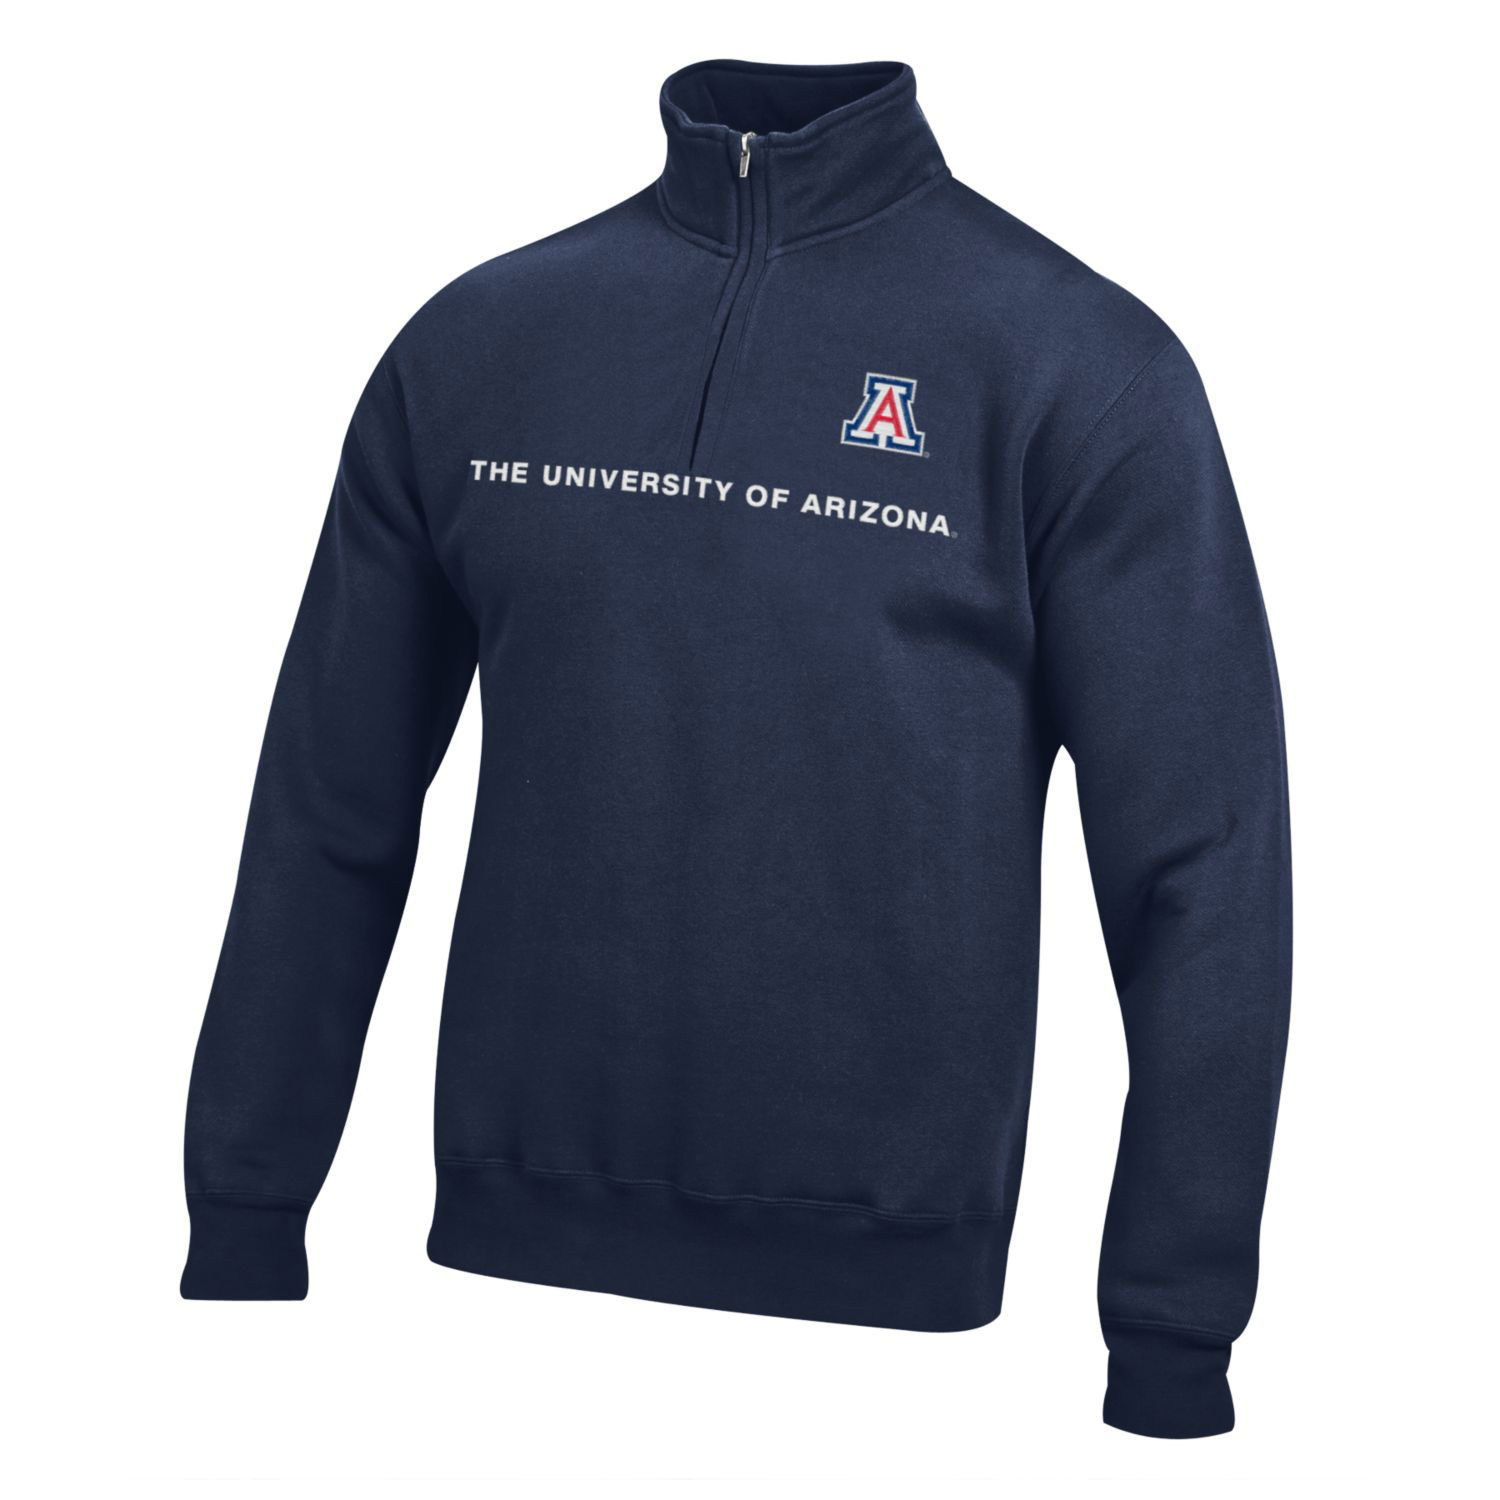 Image For Gear: The University of Arizona Big Cotton 1/4 Zip - Navy